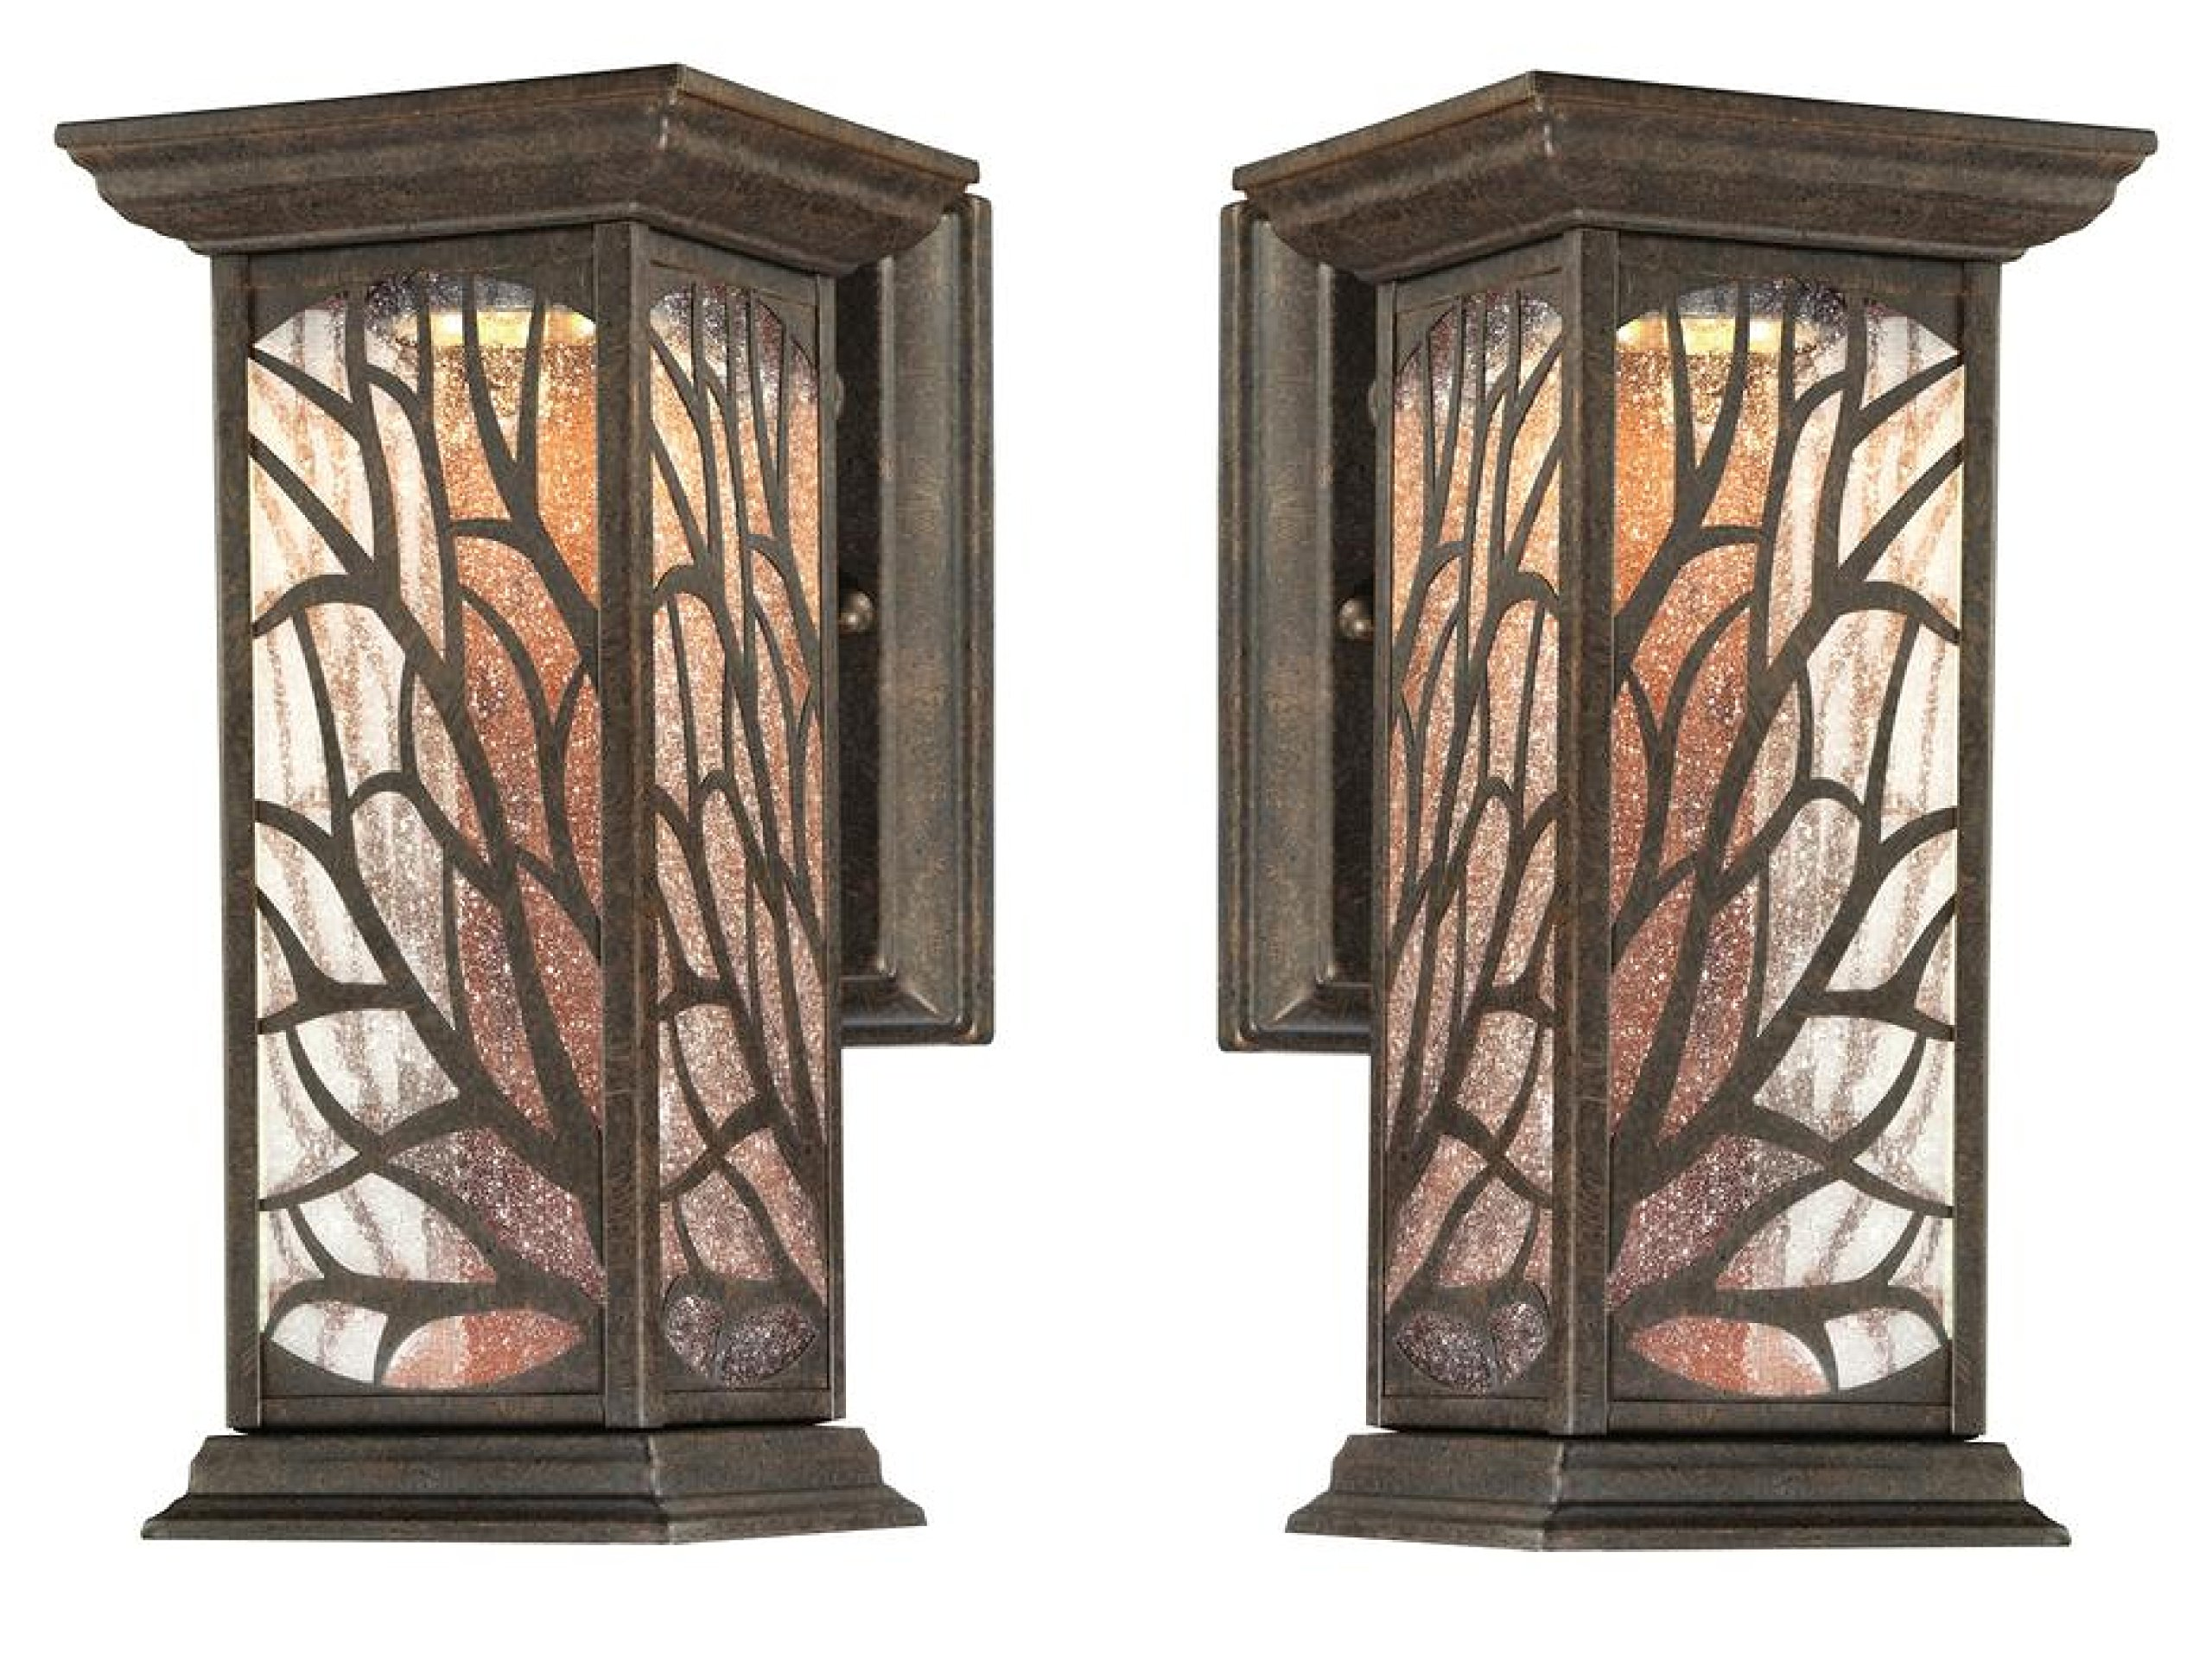 Glenwillow One-Light LED Outdoor Wall Lantern with Clear Seeded Glass, Victorian Bronze Finish (2-Pack) by Dysmio Lighting (Image #1)